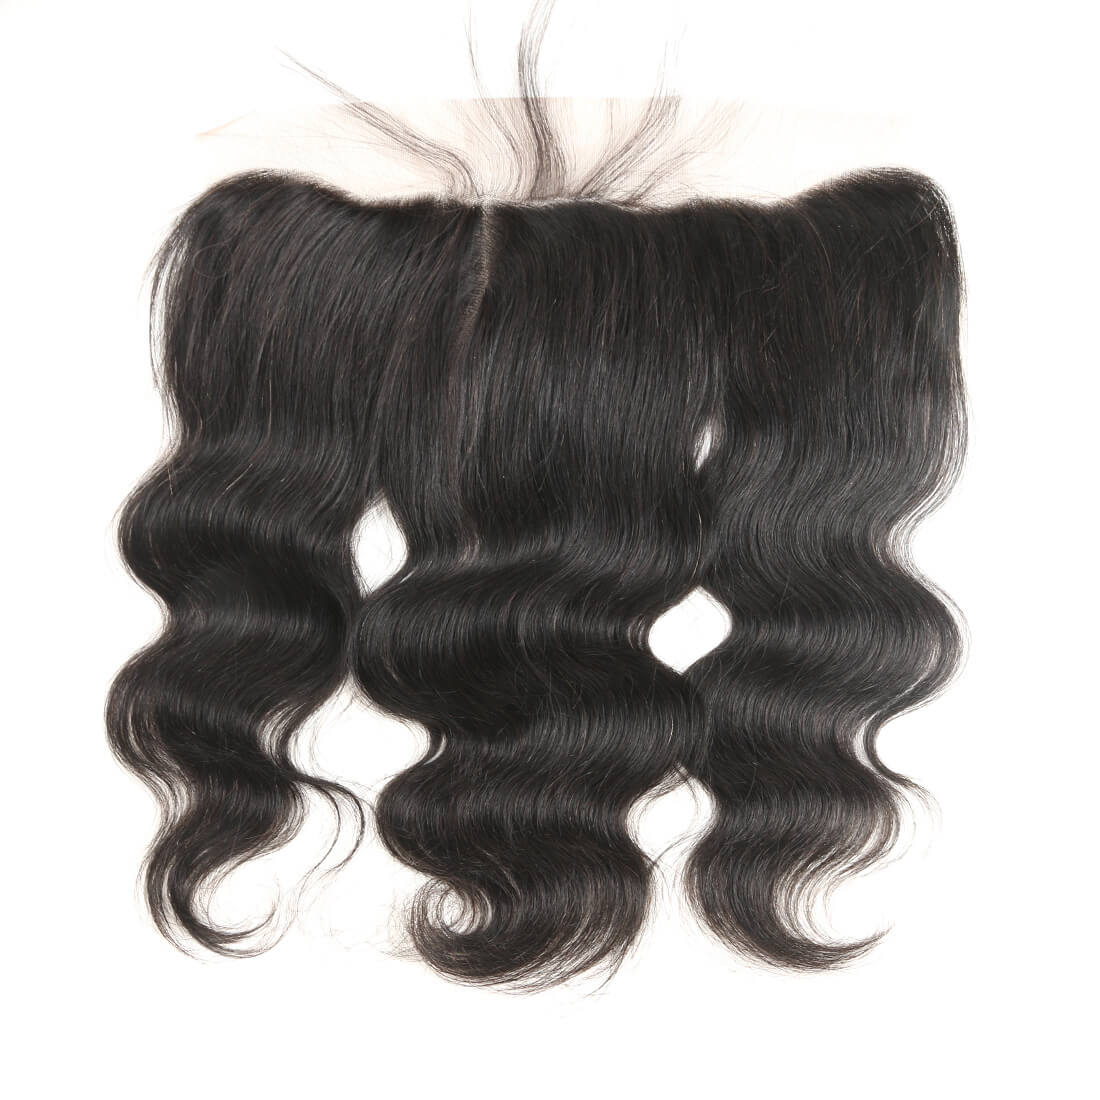 brazilian-body-wave-hair-care